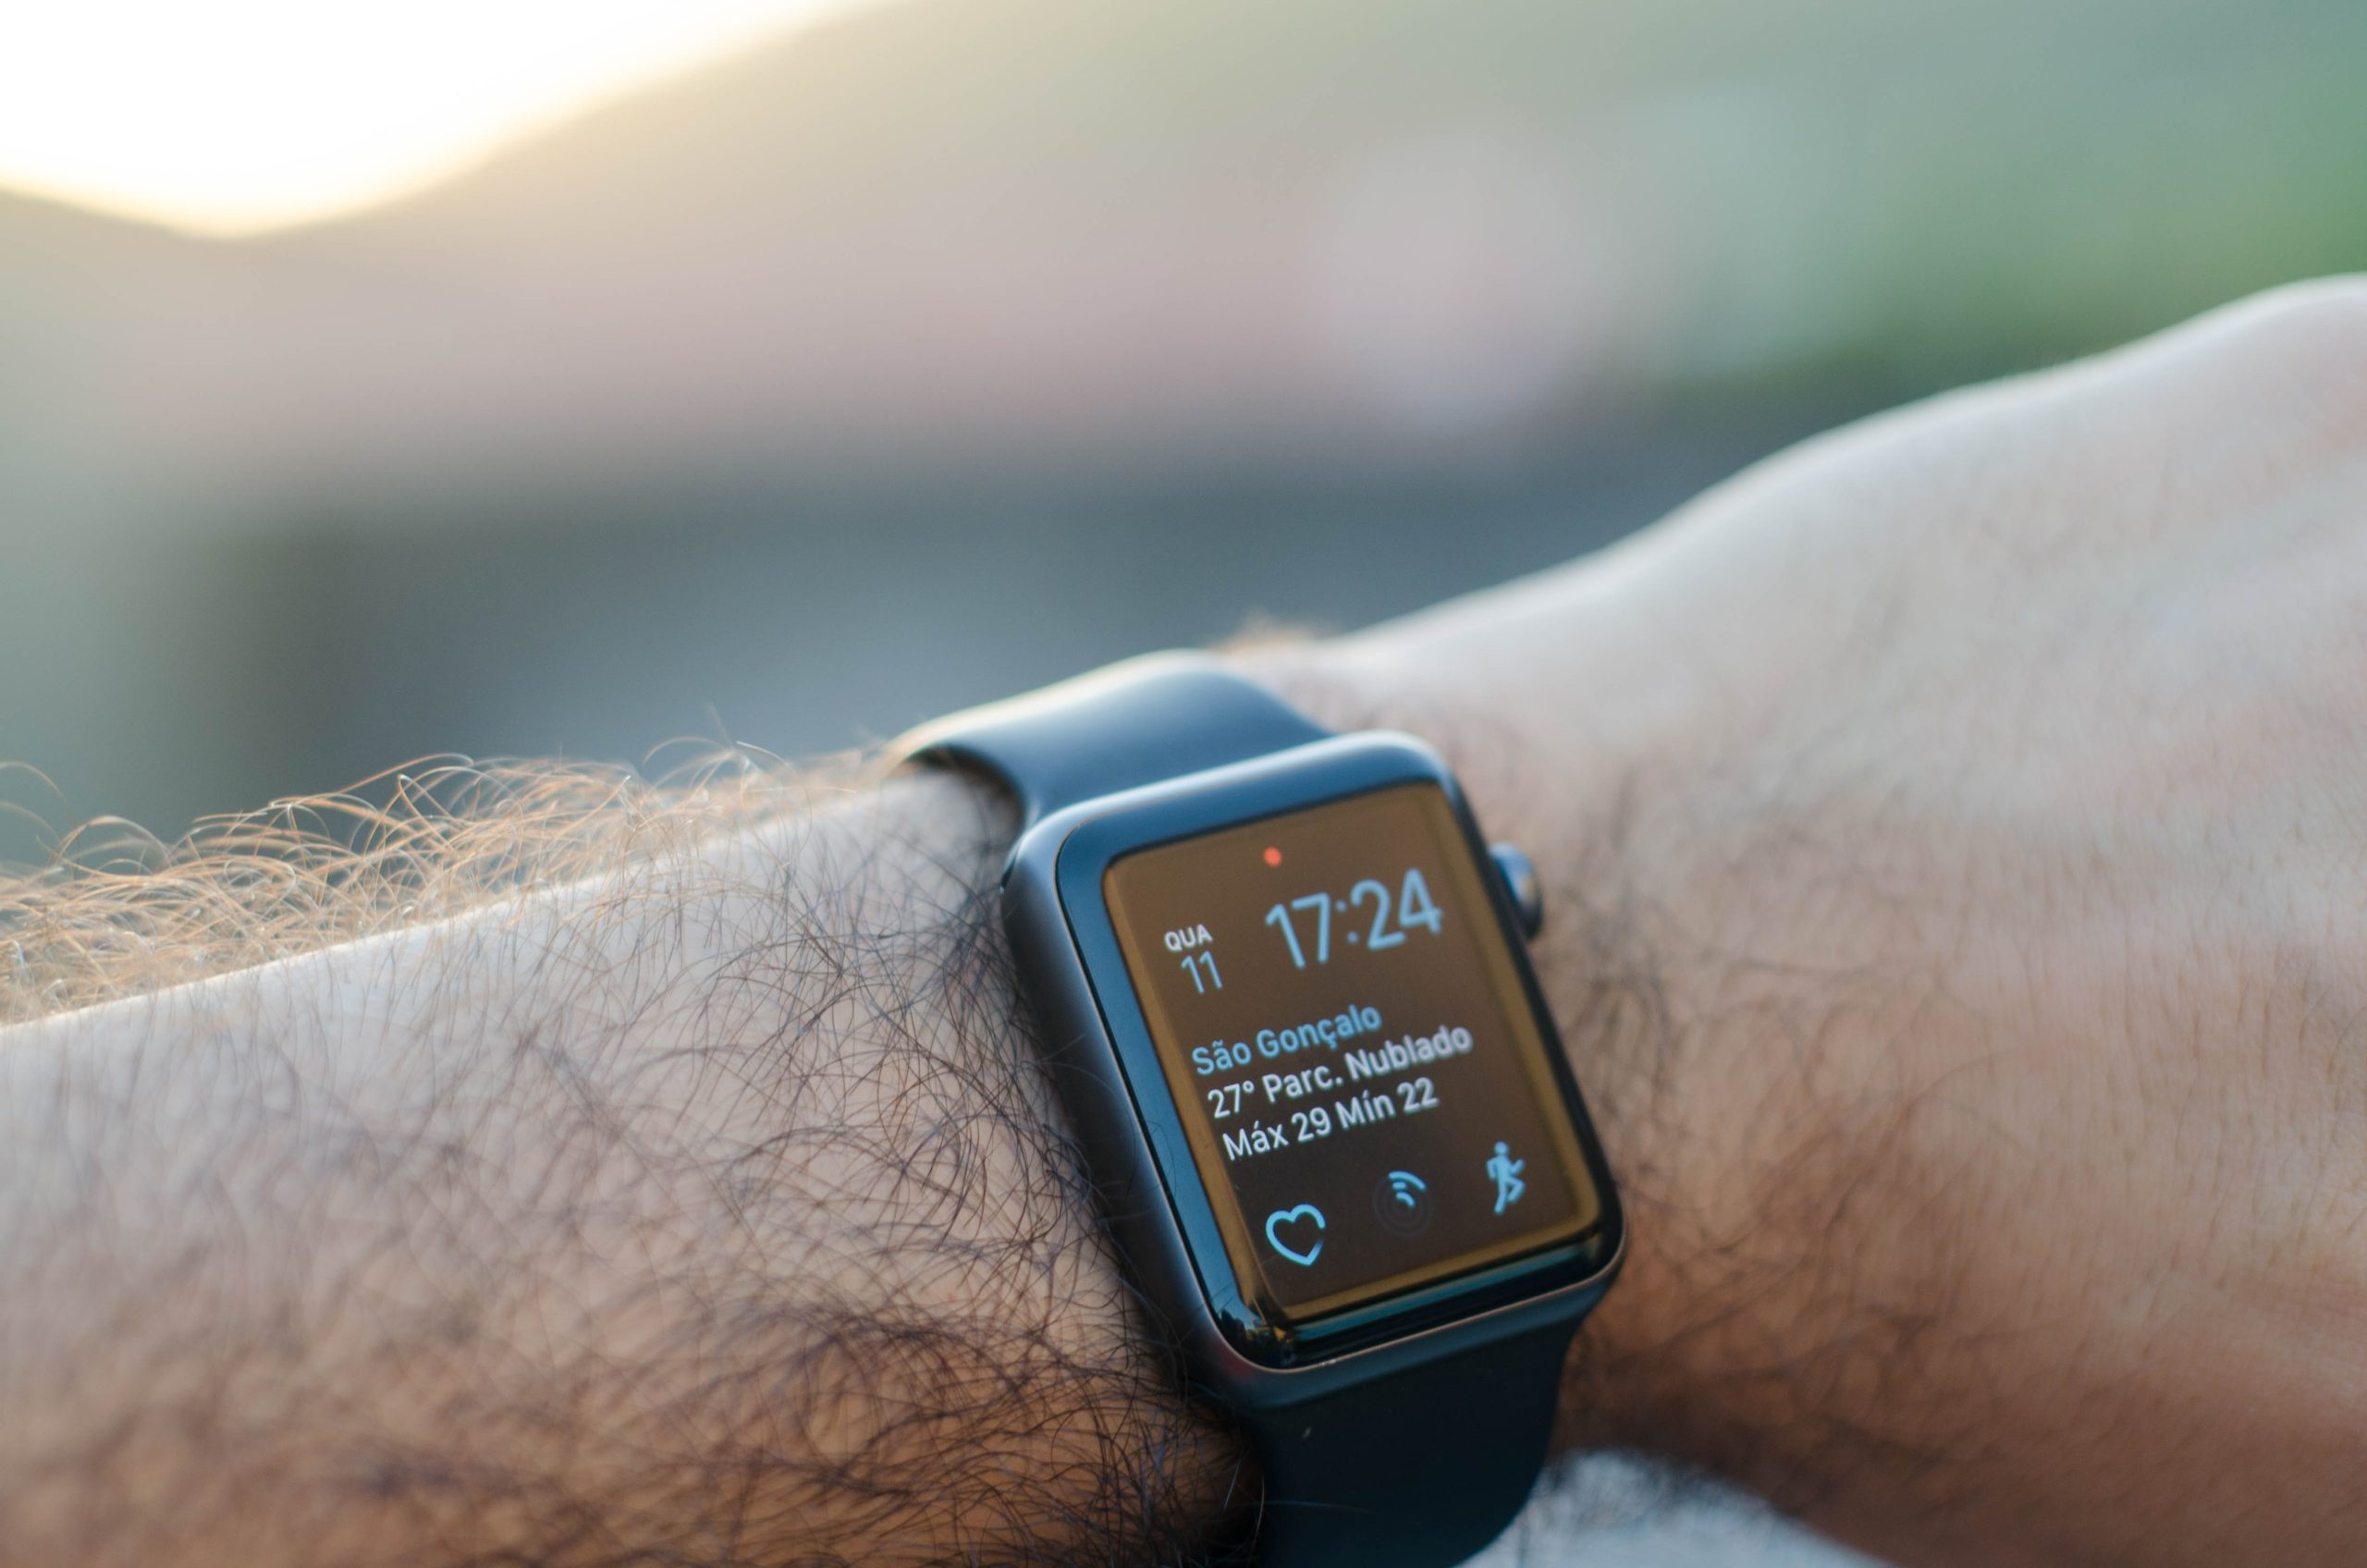 Fitness Coach, Austin Alexander Burridge, Shares Six Benefits Of Wearable Tech